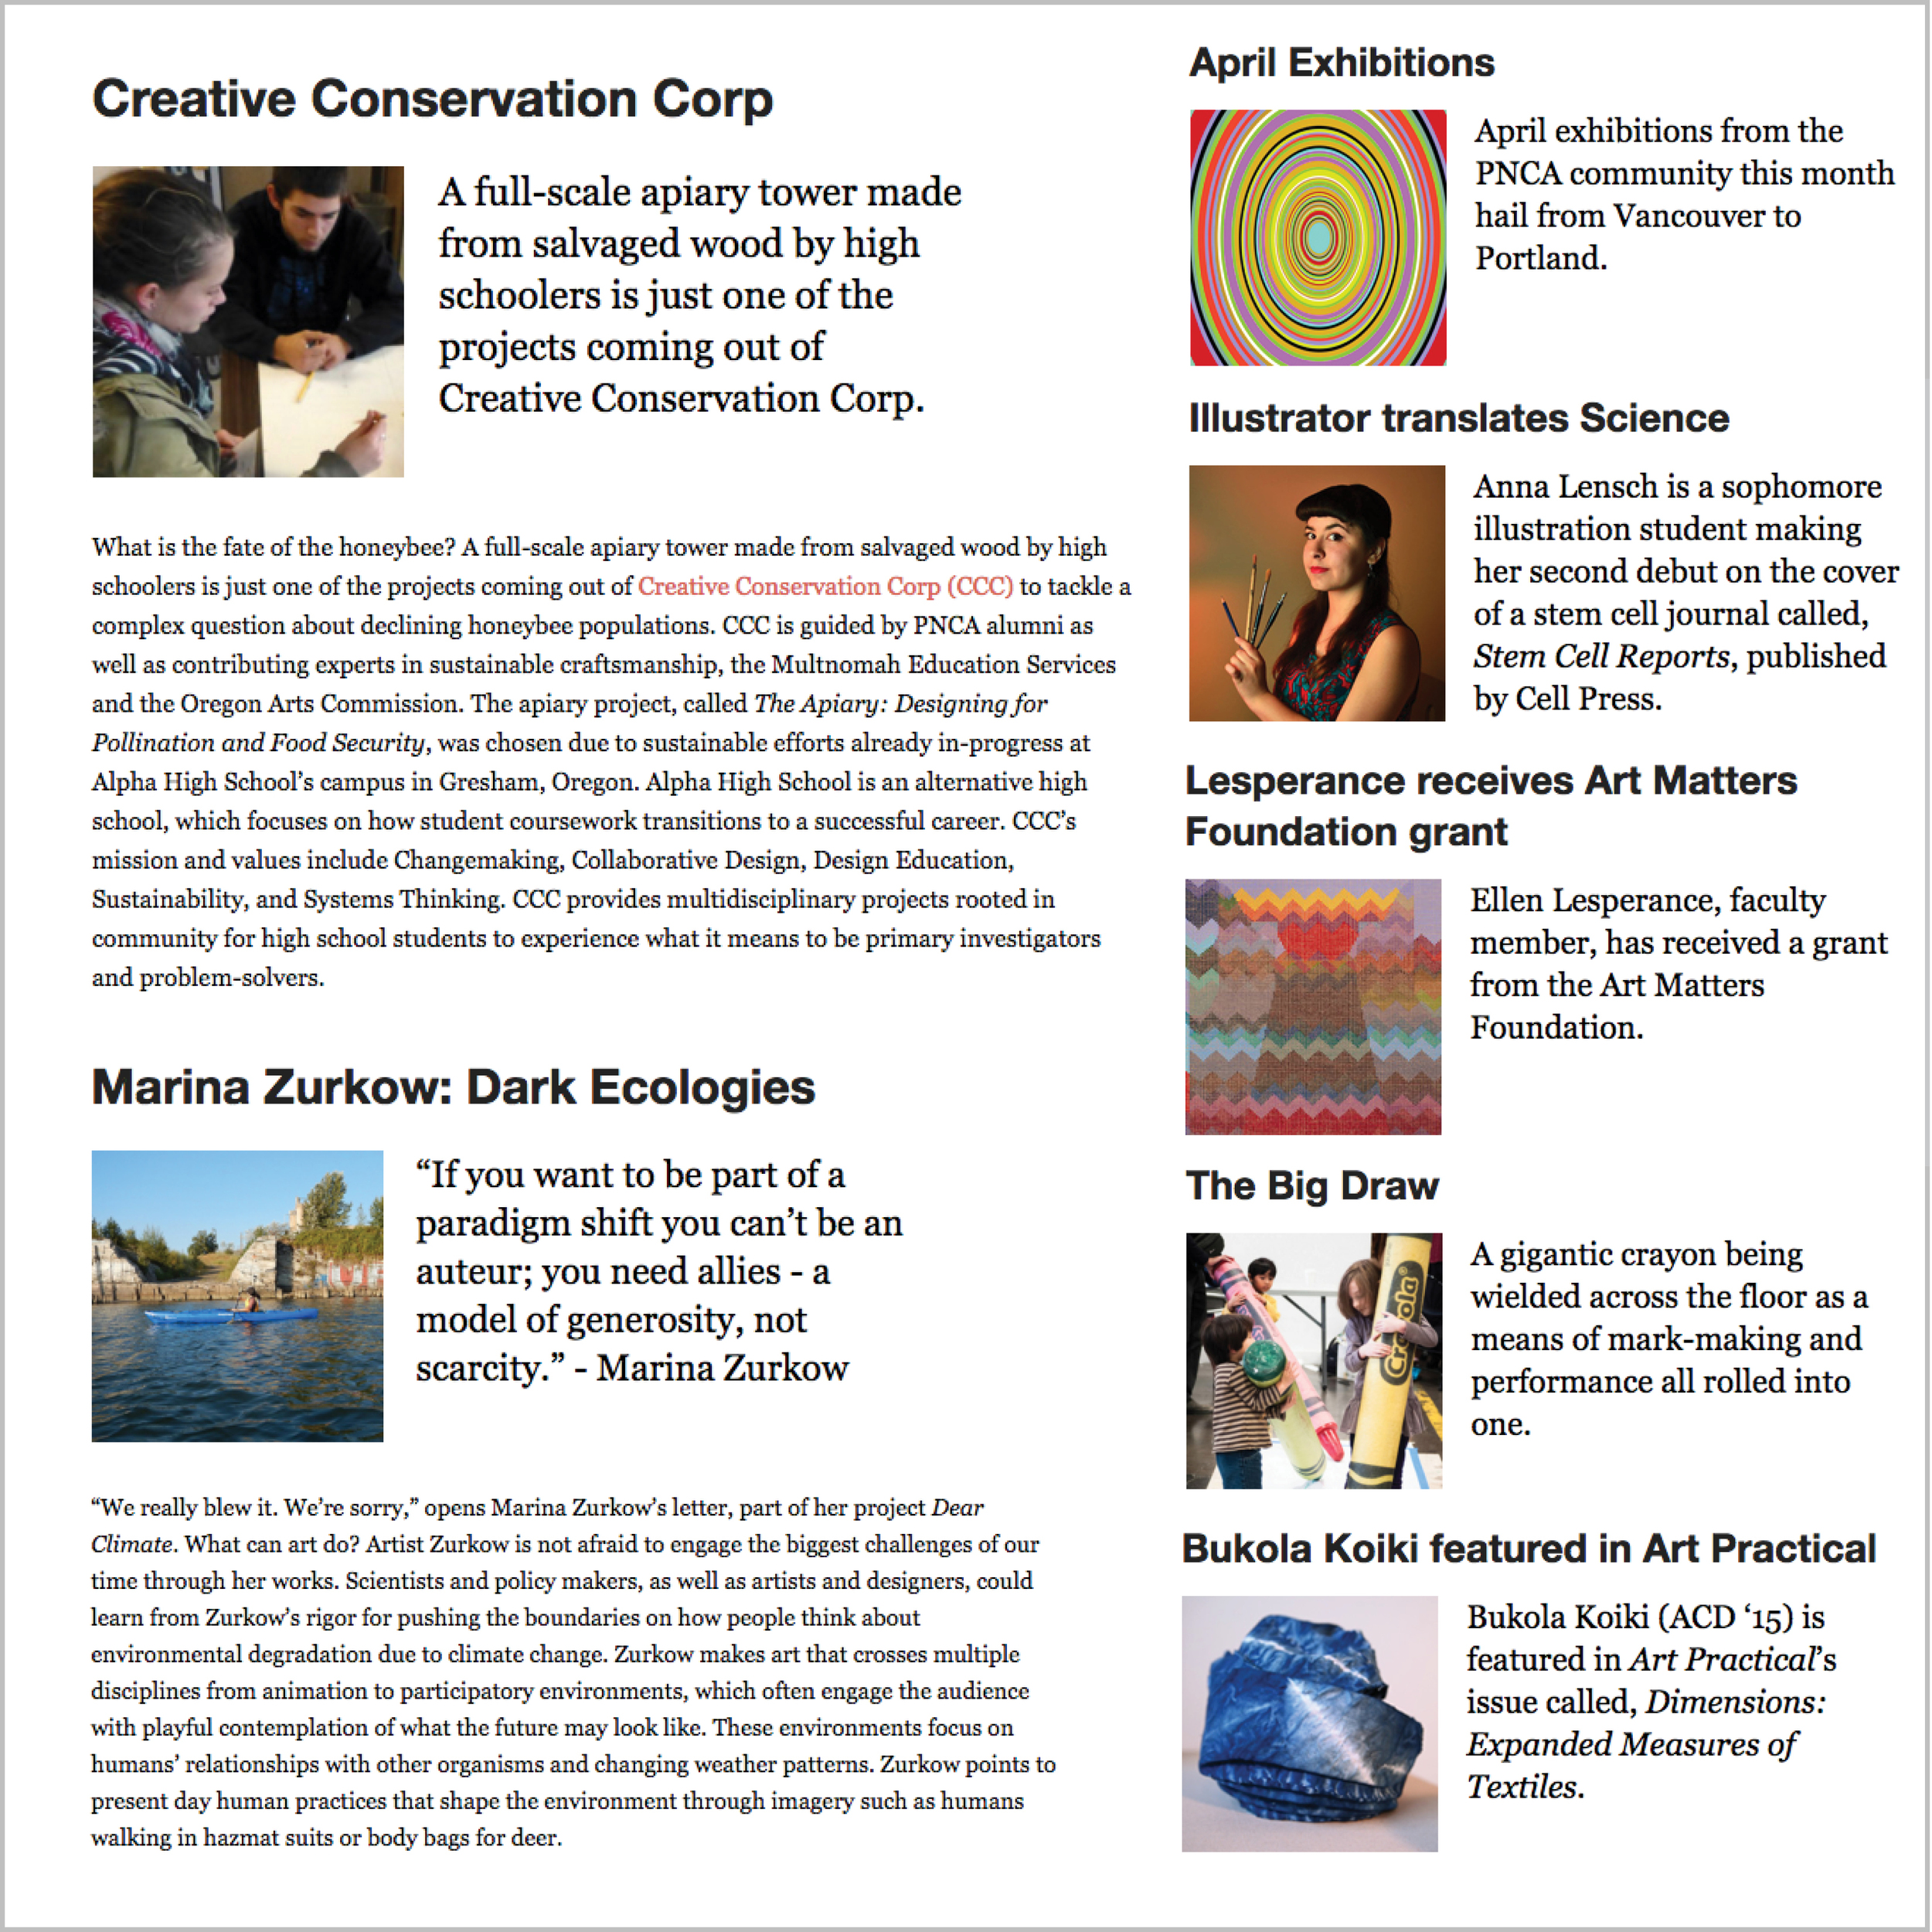 Above: Editorial work for PNCA. I have written feature and short articles for PNCA's online magazine. I have researched story leads for the communications office, and conducted interviews and image research.  LINK: Creative Conservation Corp article (top right image and text)